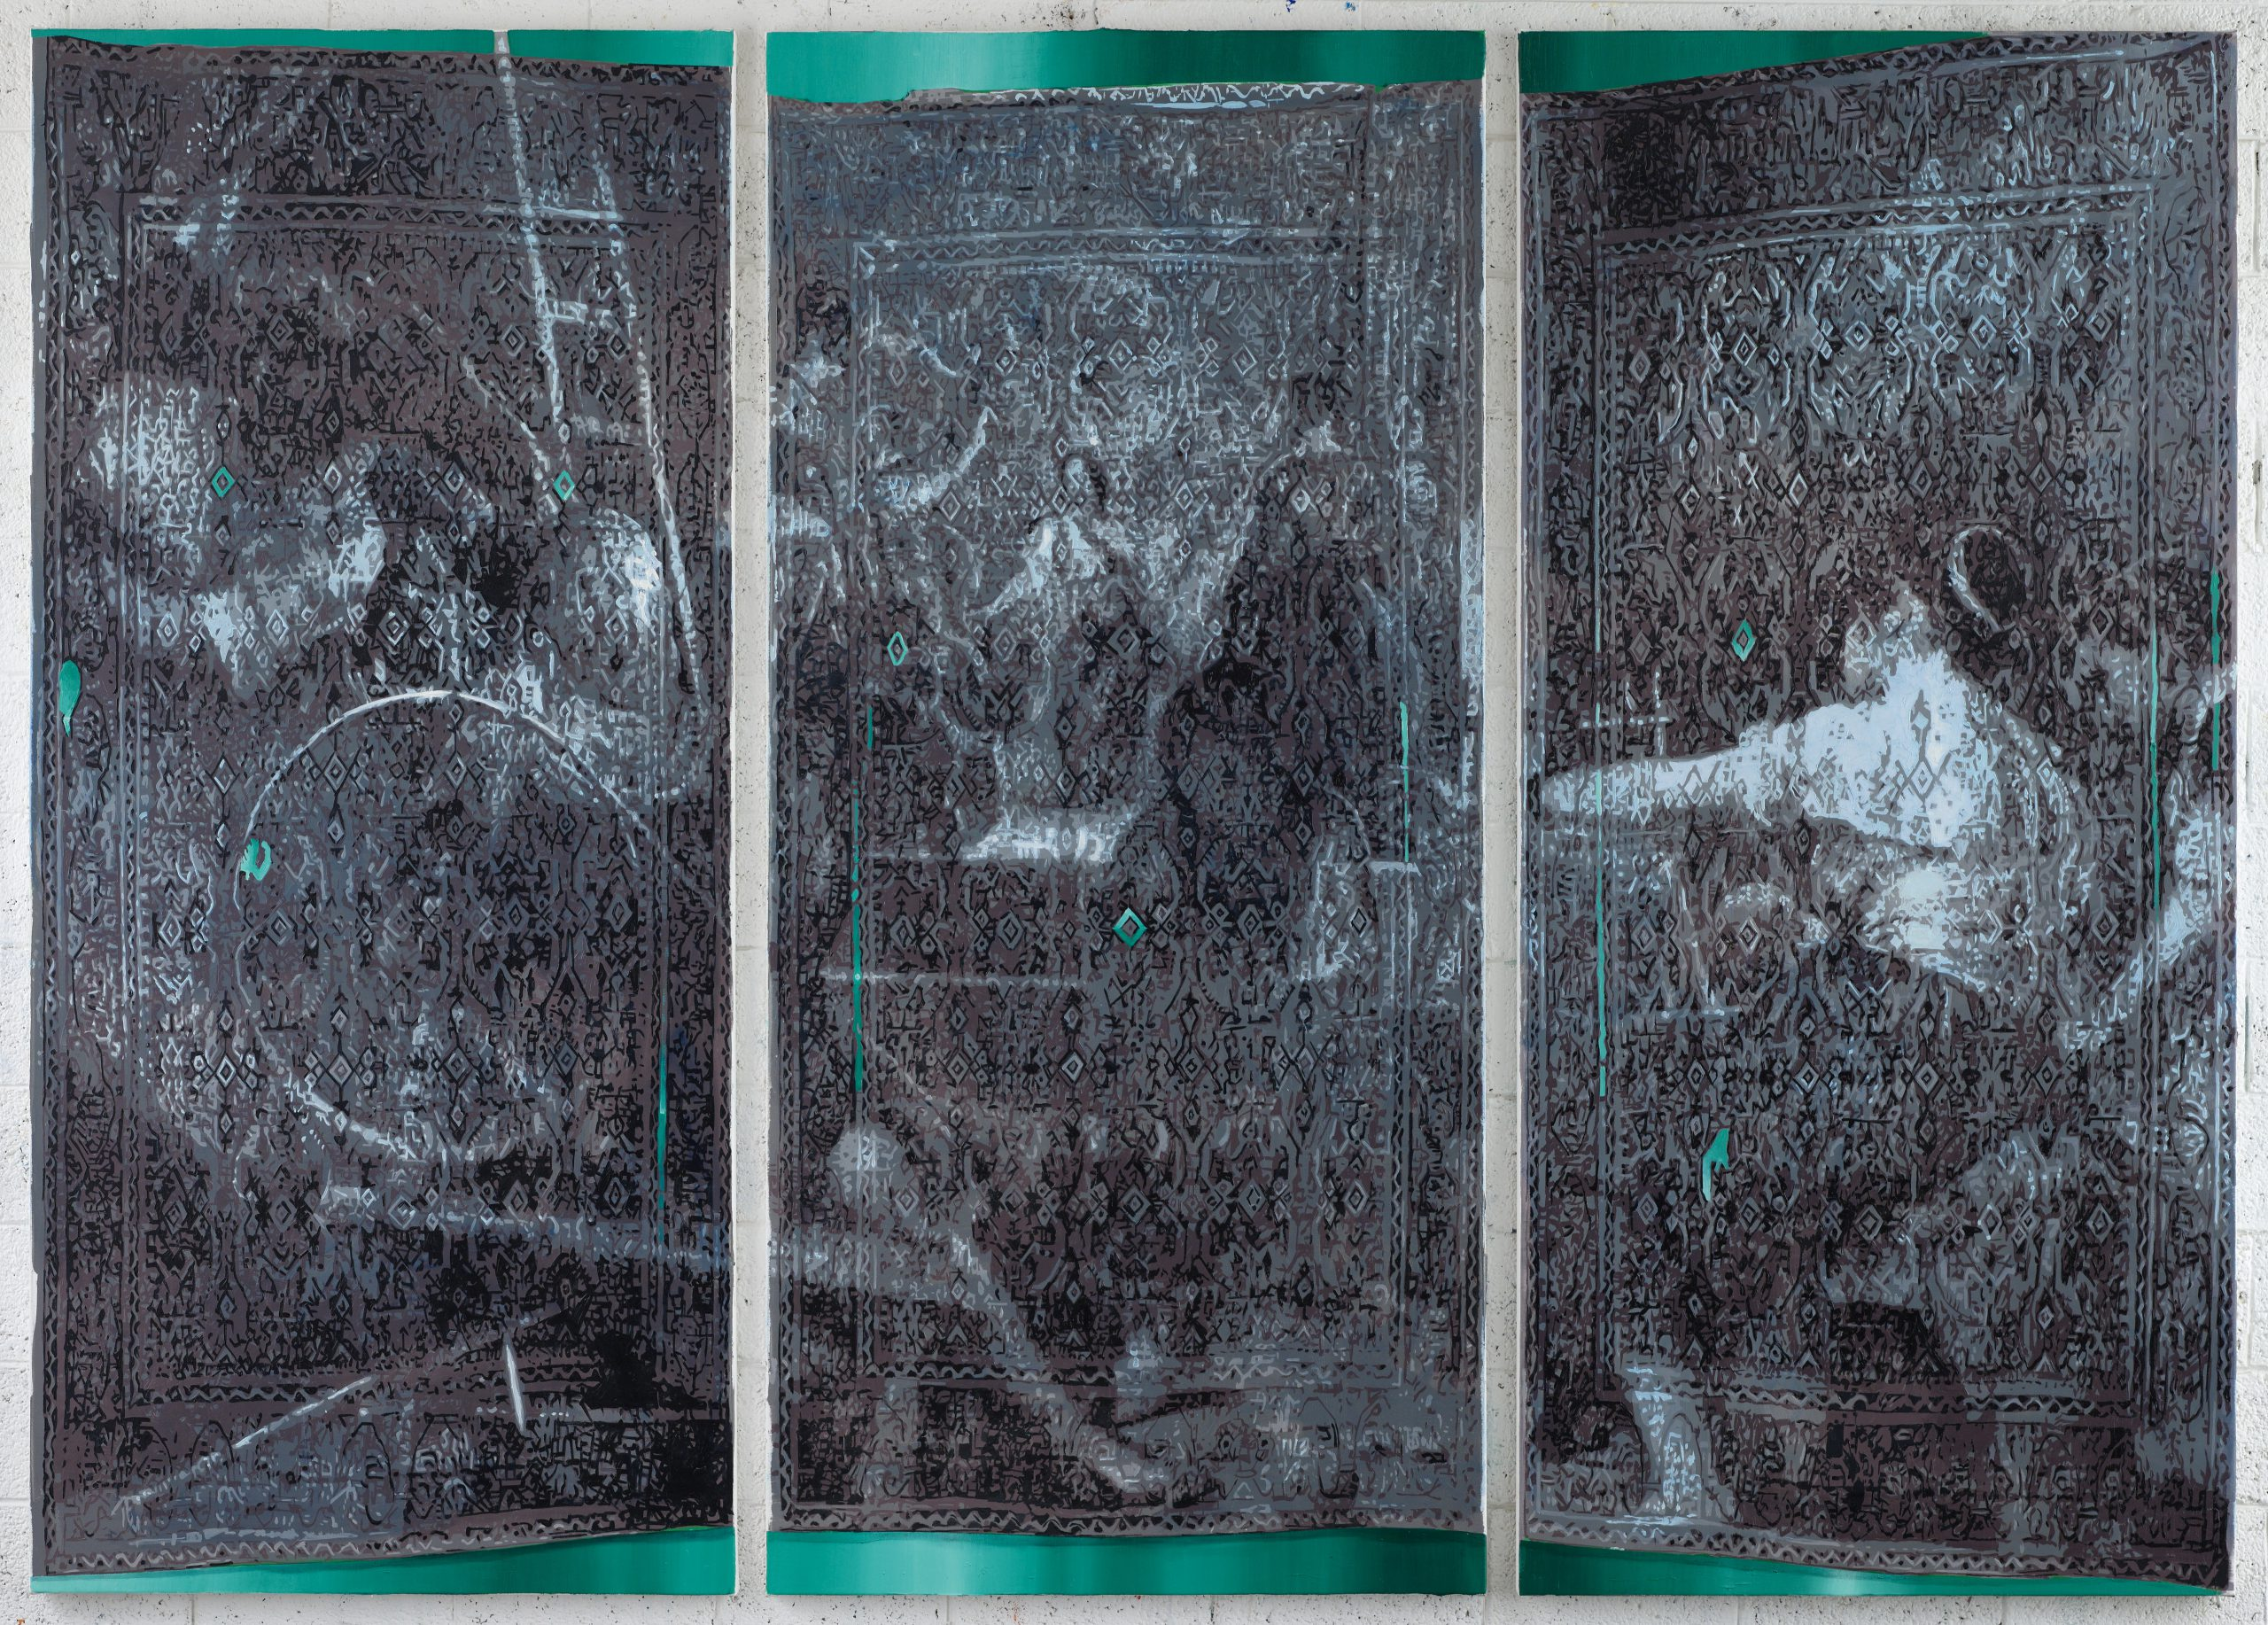 Oren ELiav, Loom 2018, oil on canvas, triptych, each part 240 x 110 cm